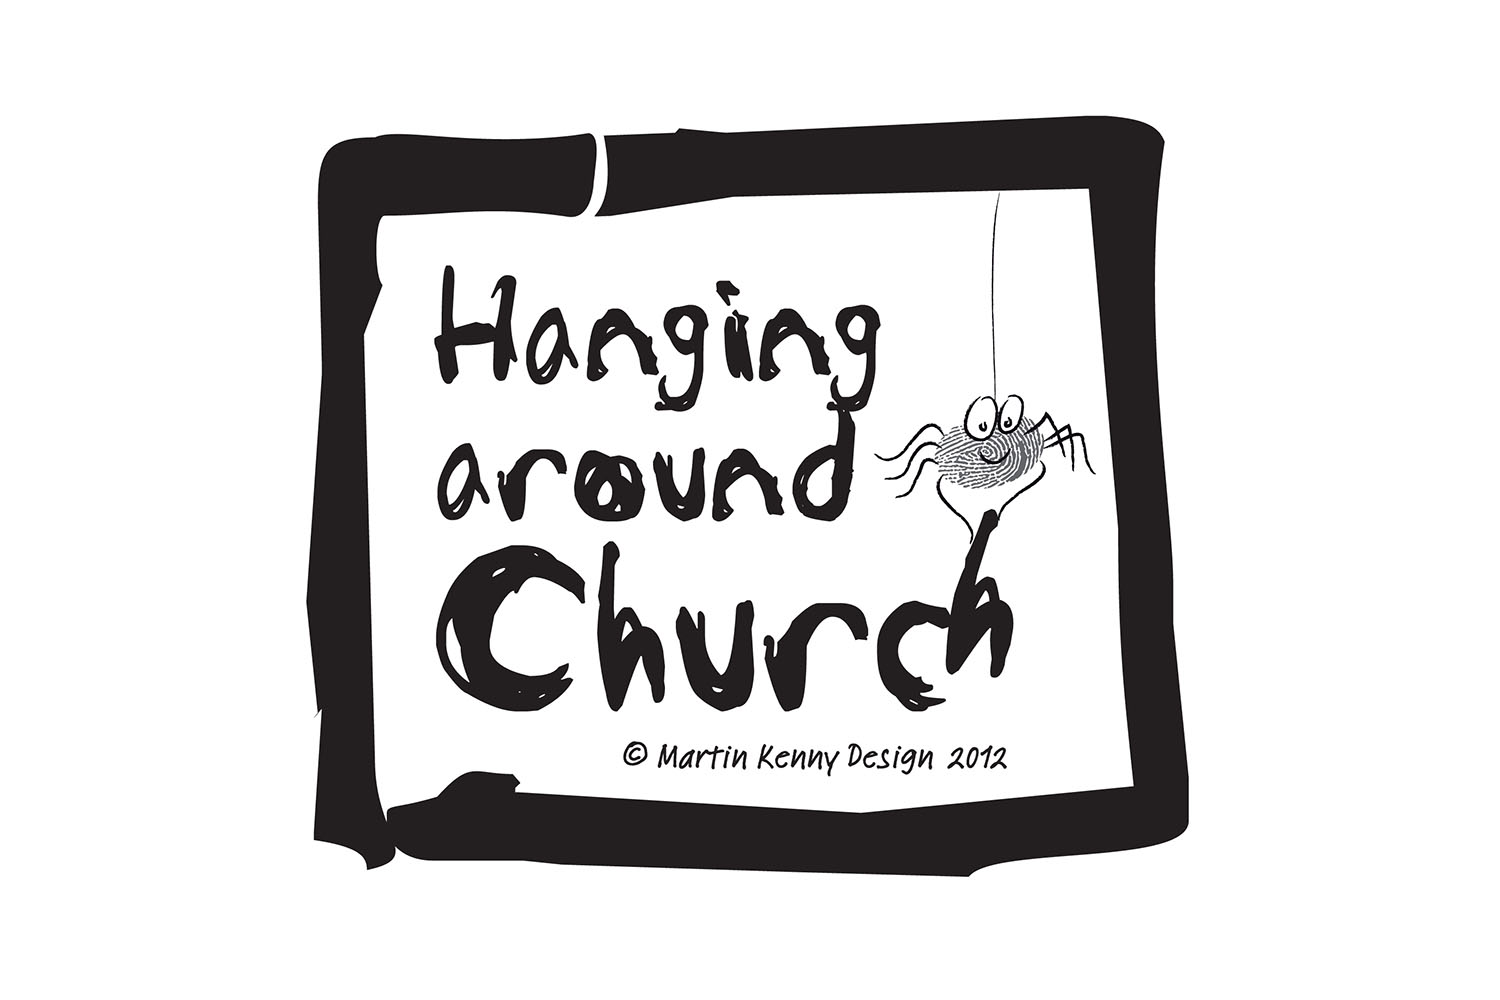 Hanging around church logo